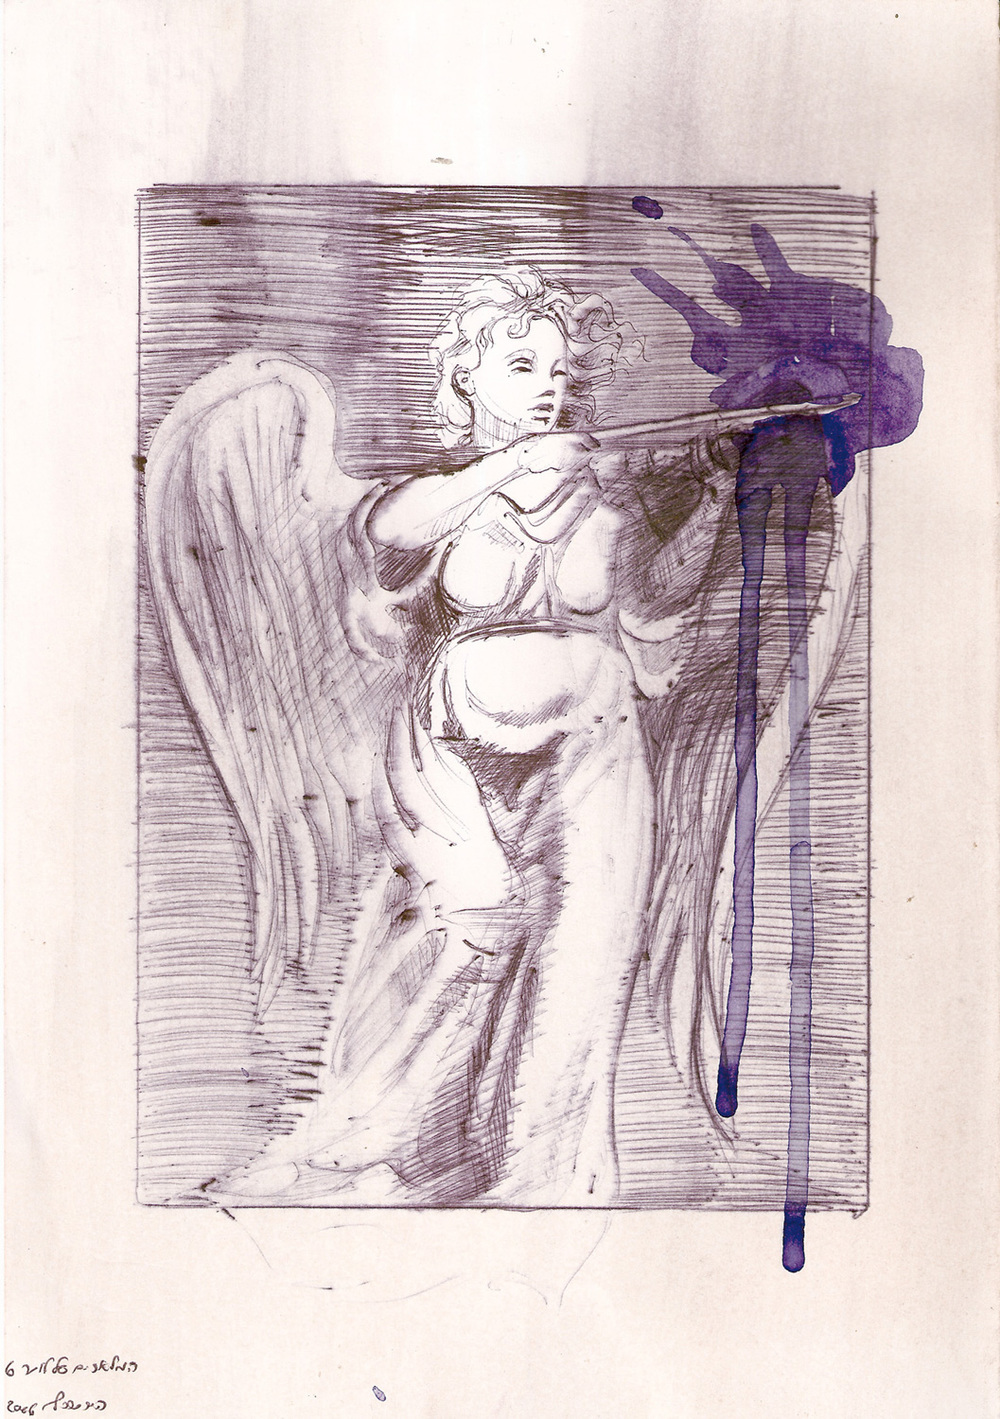 Luther's Angle, Ballpoint on paper, 2006